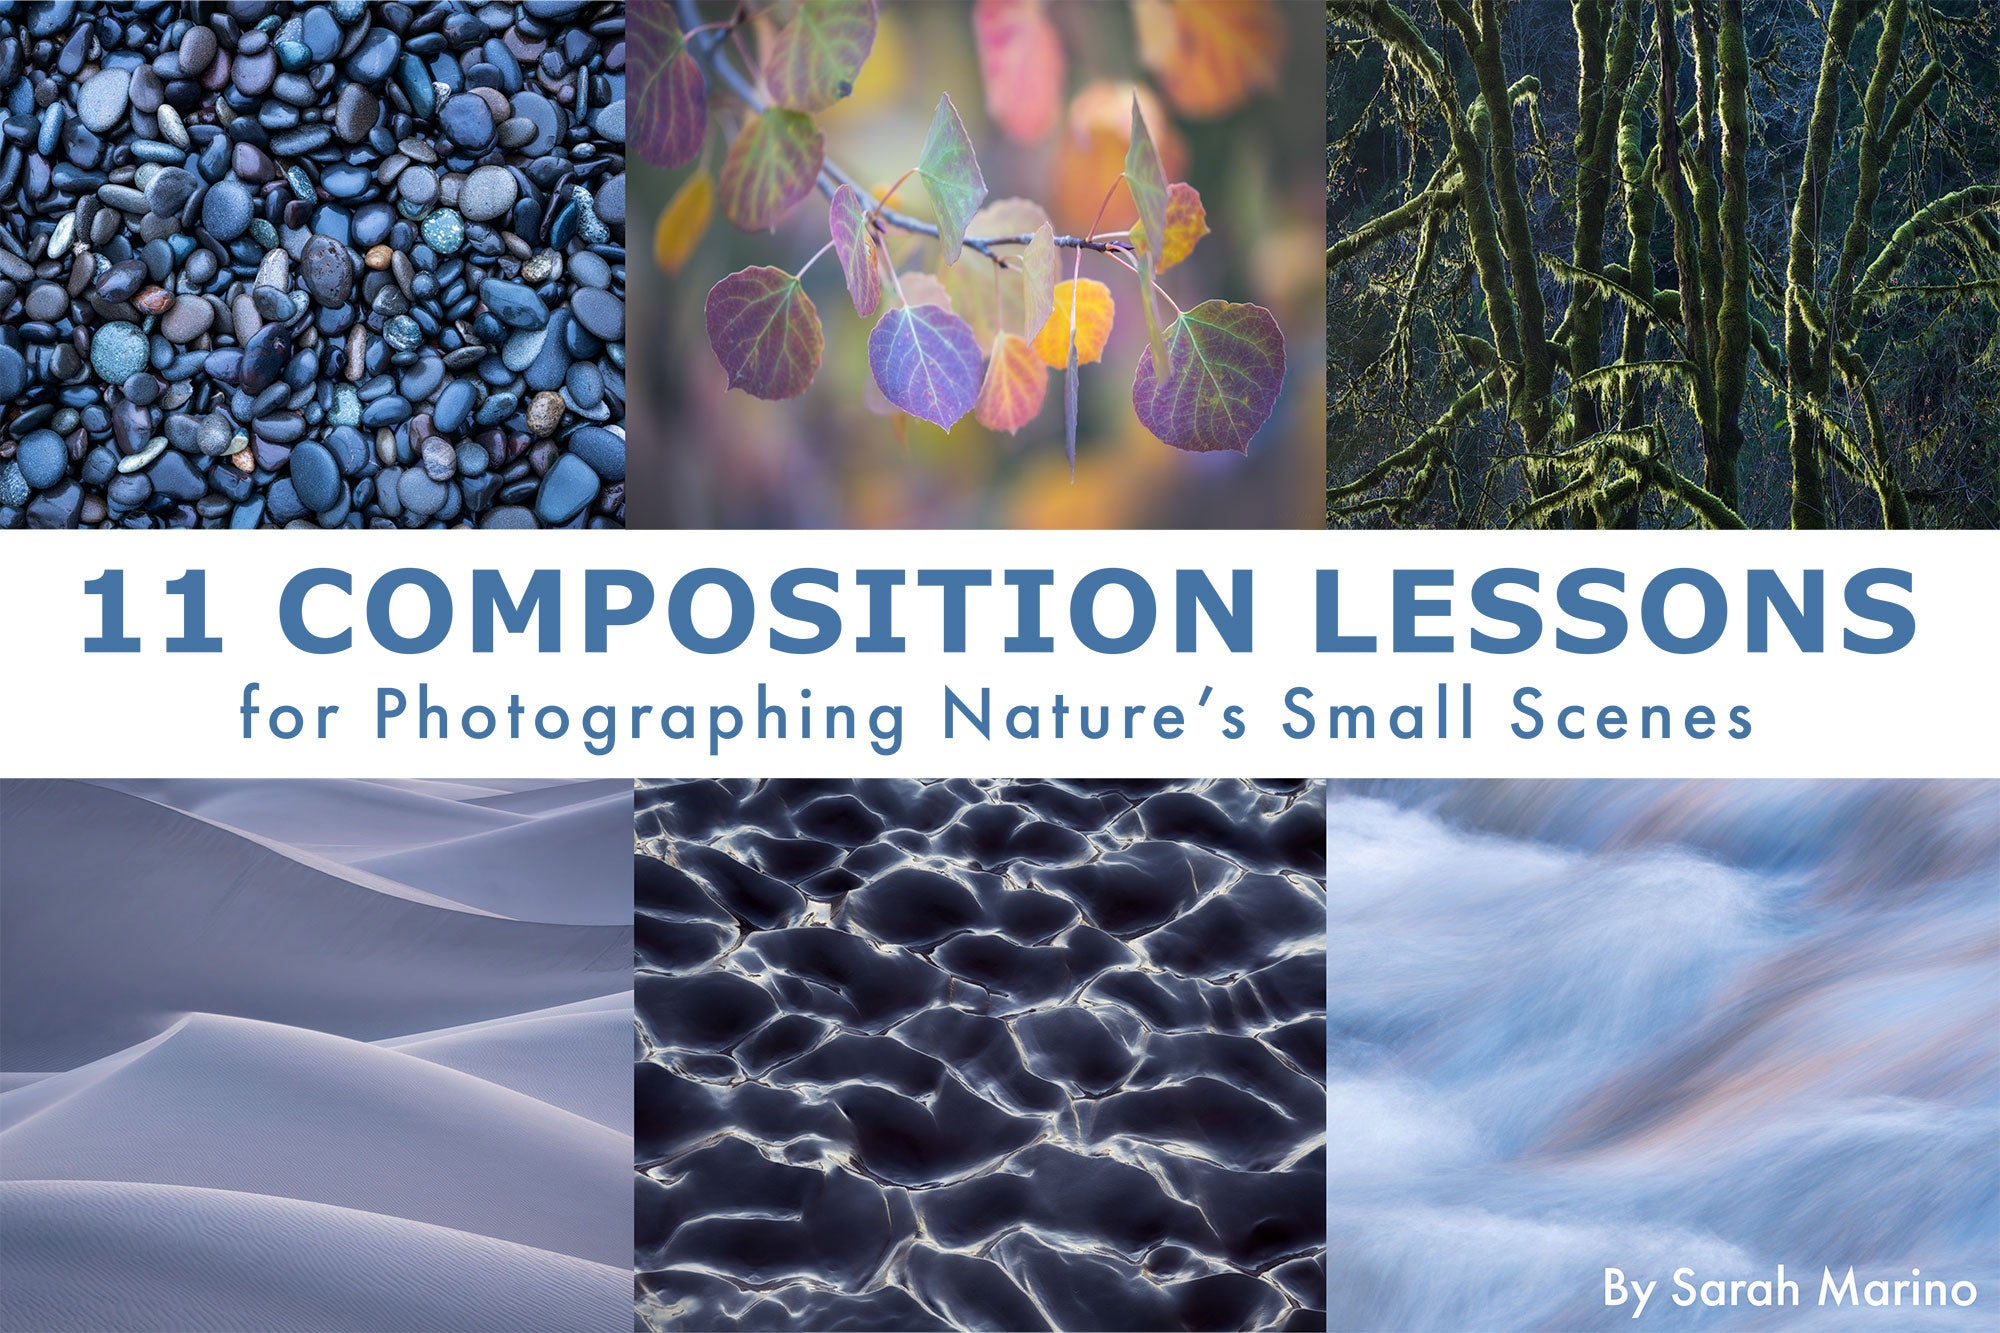 11 Composition Lessons For Photographing Nature's Small Scenes